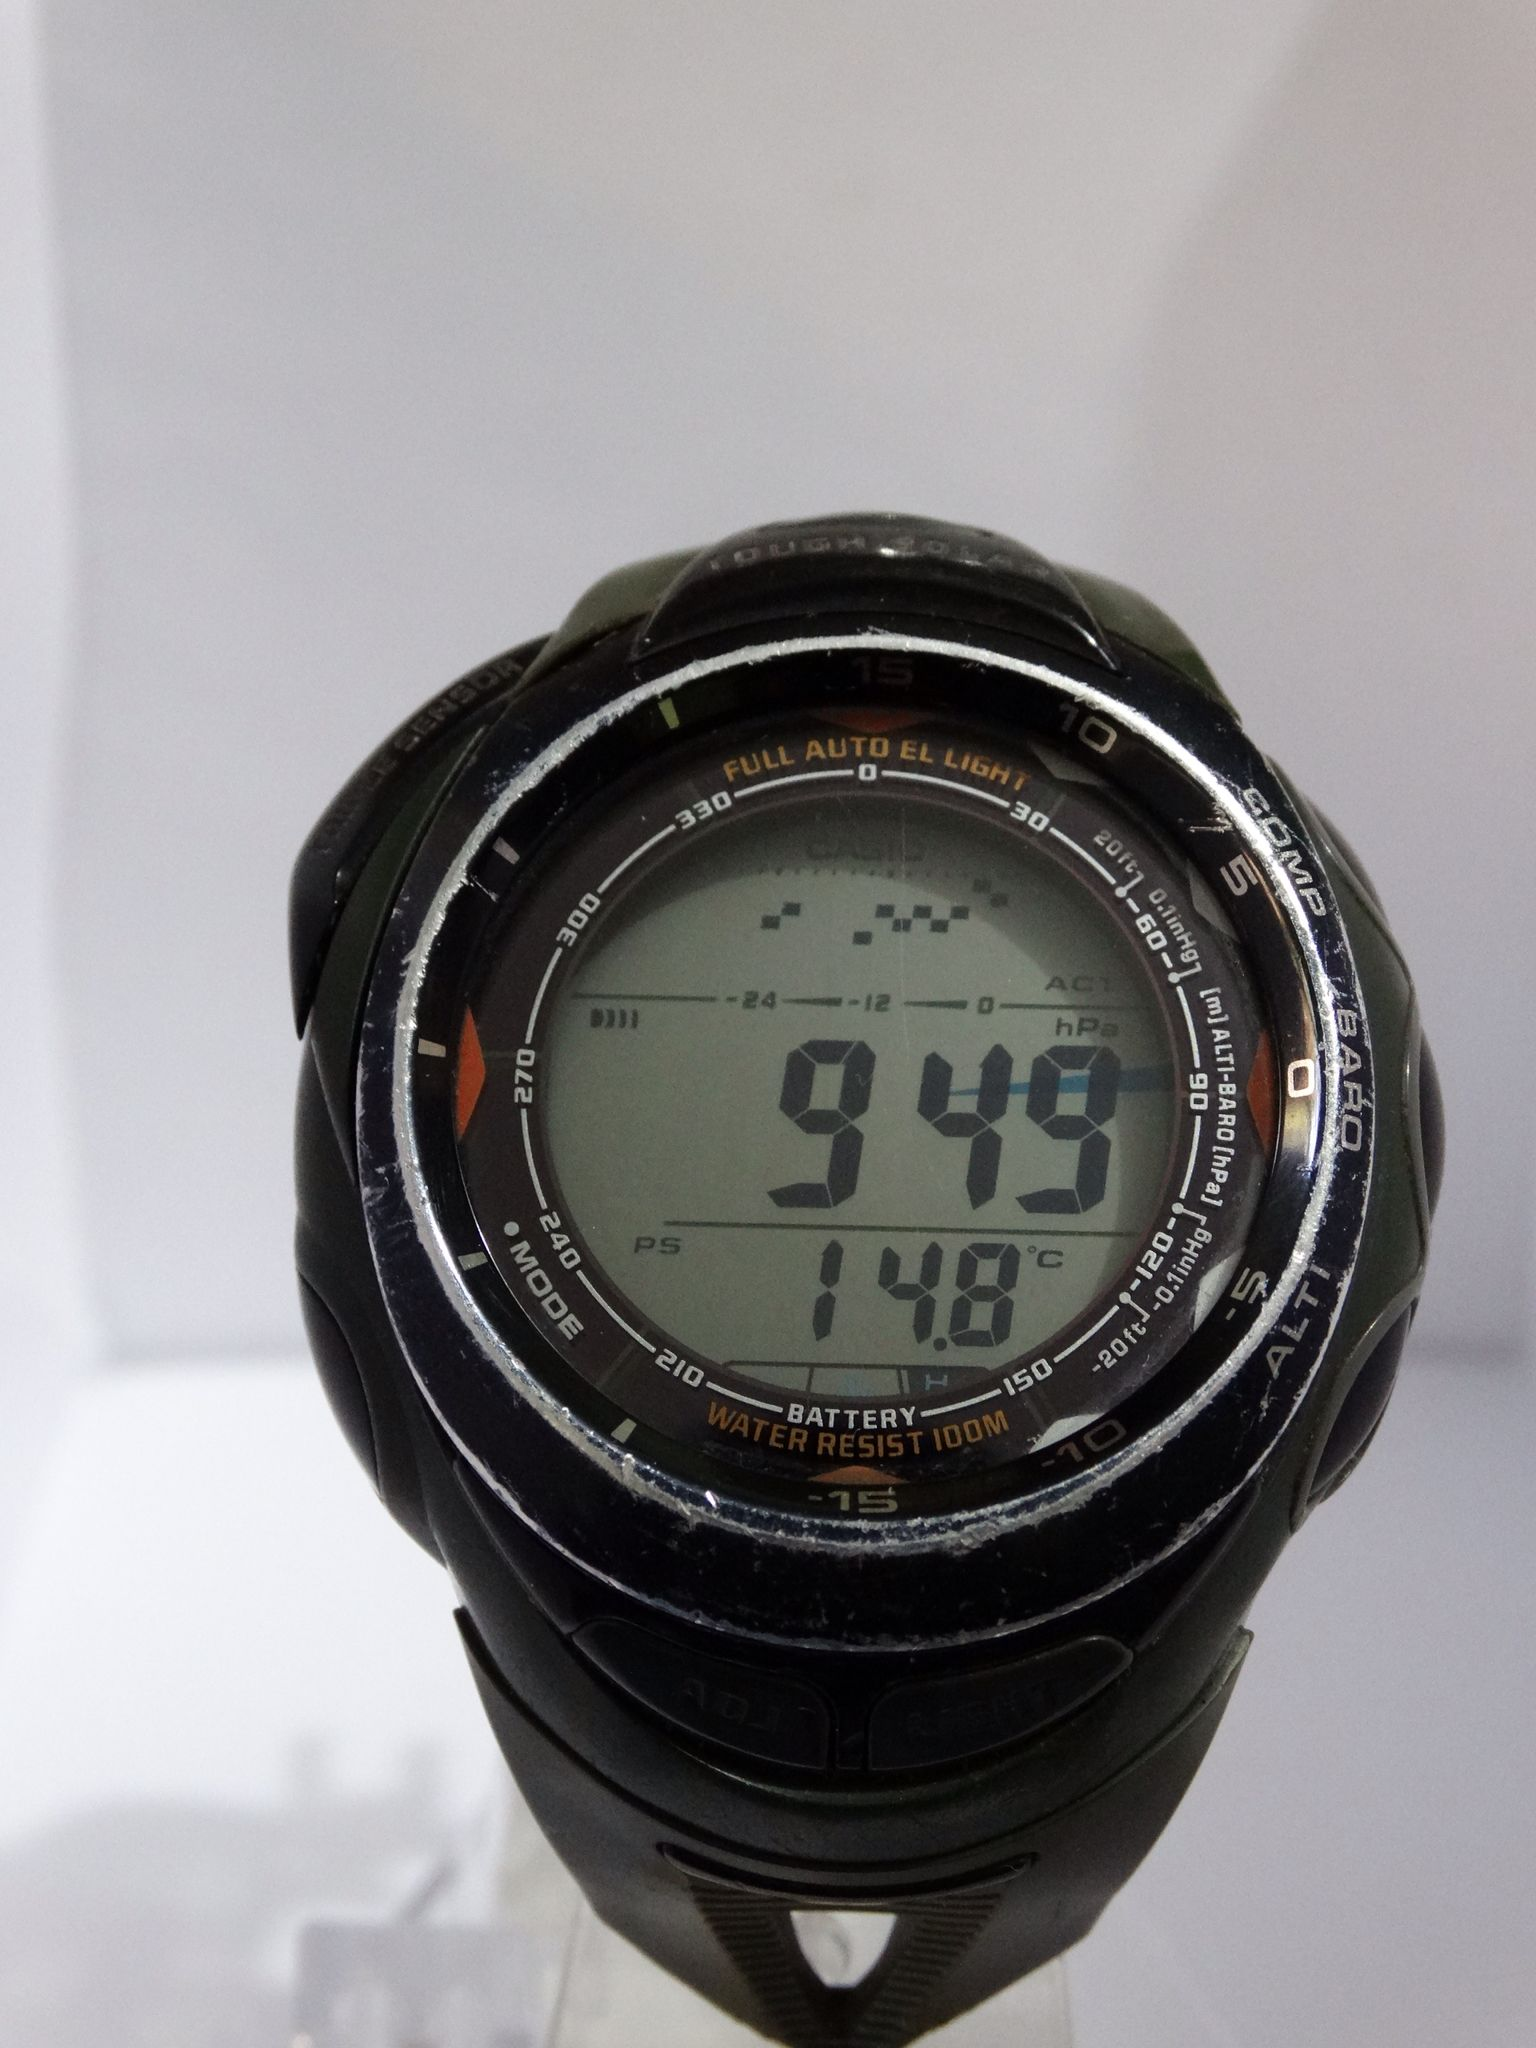 42047bd08 CASIO PRG-90 TRIPLE SENSOR - PROTREK ALTI-BAROMETER/THERMOMETER/COMPASS  TOUGH